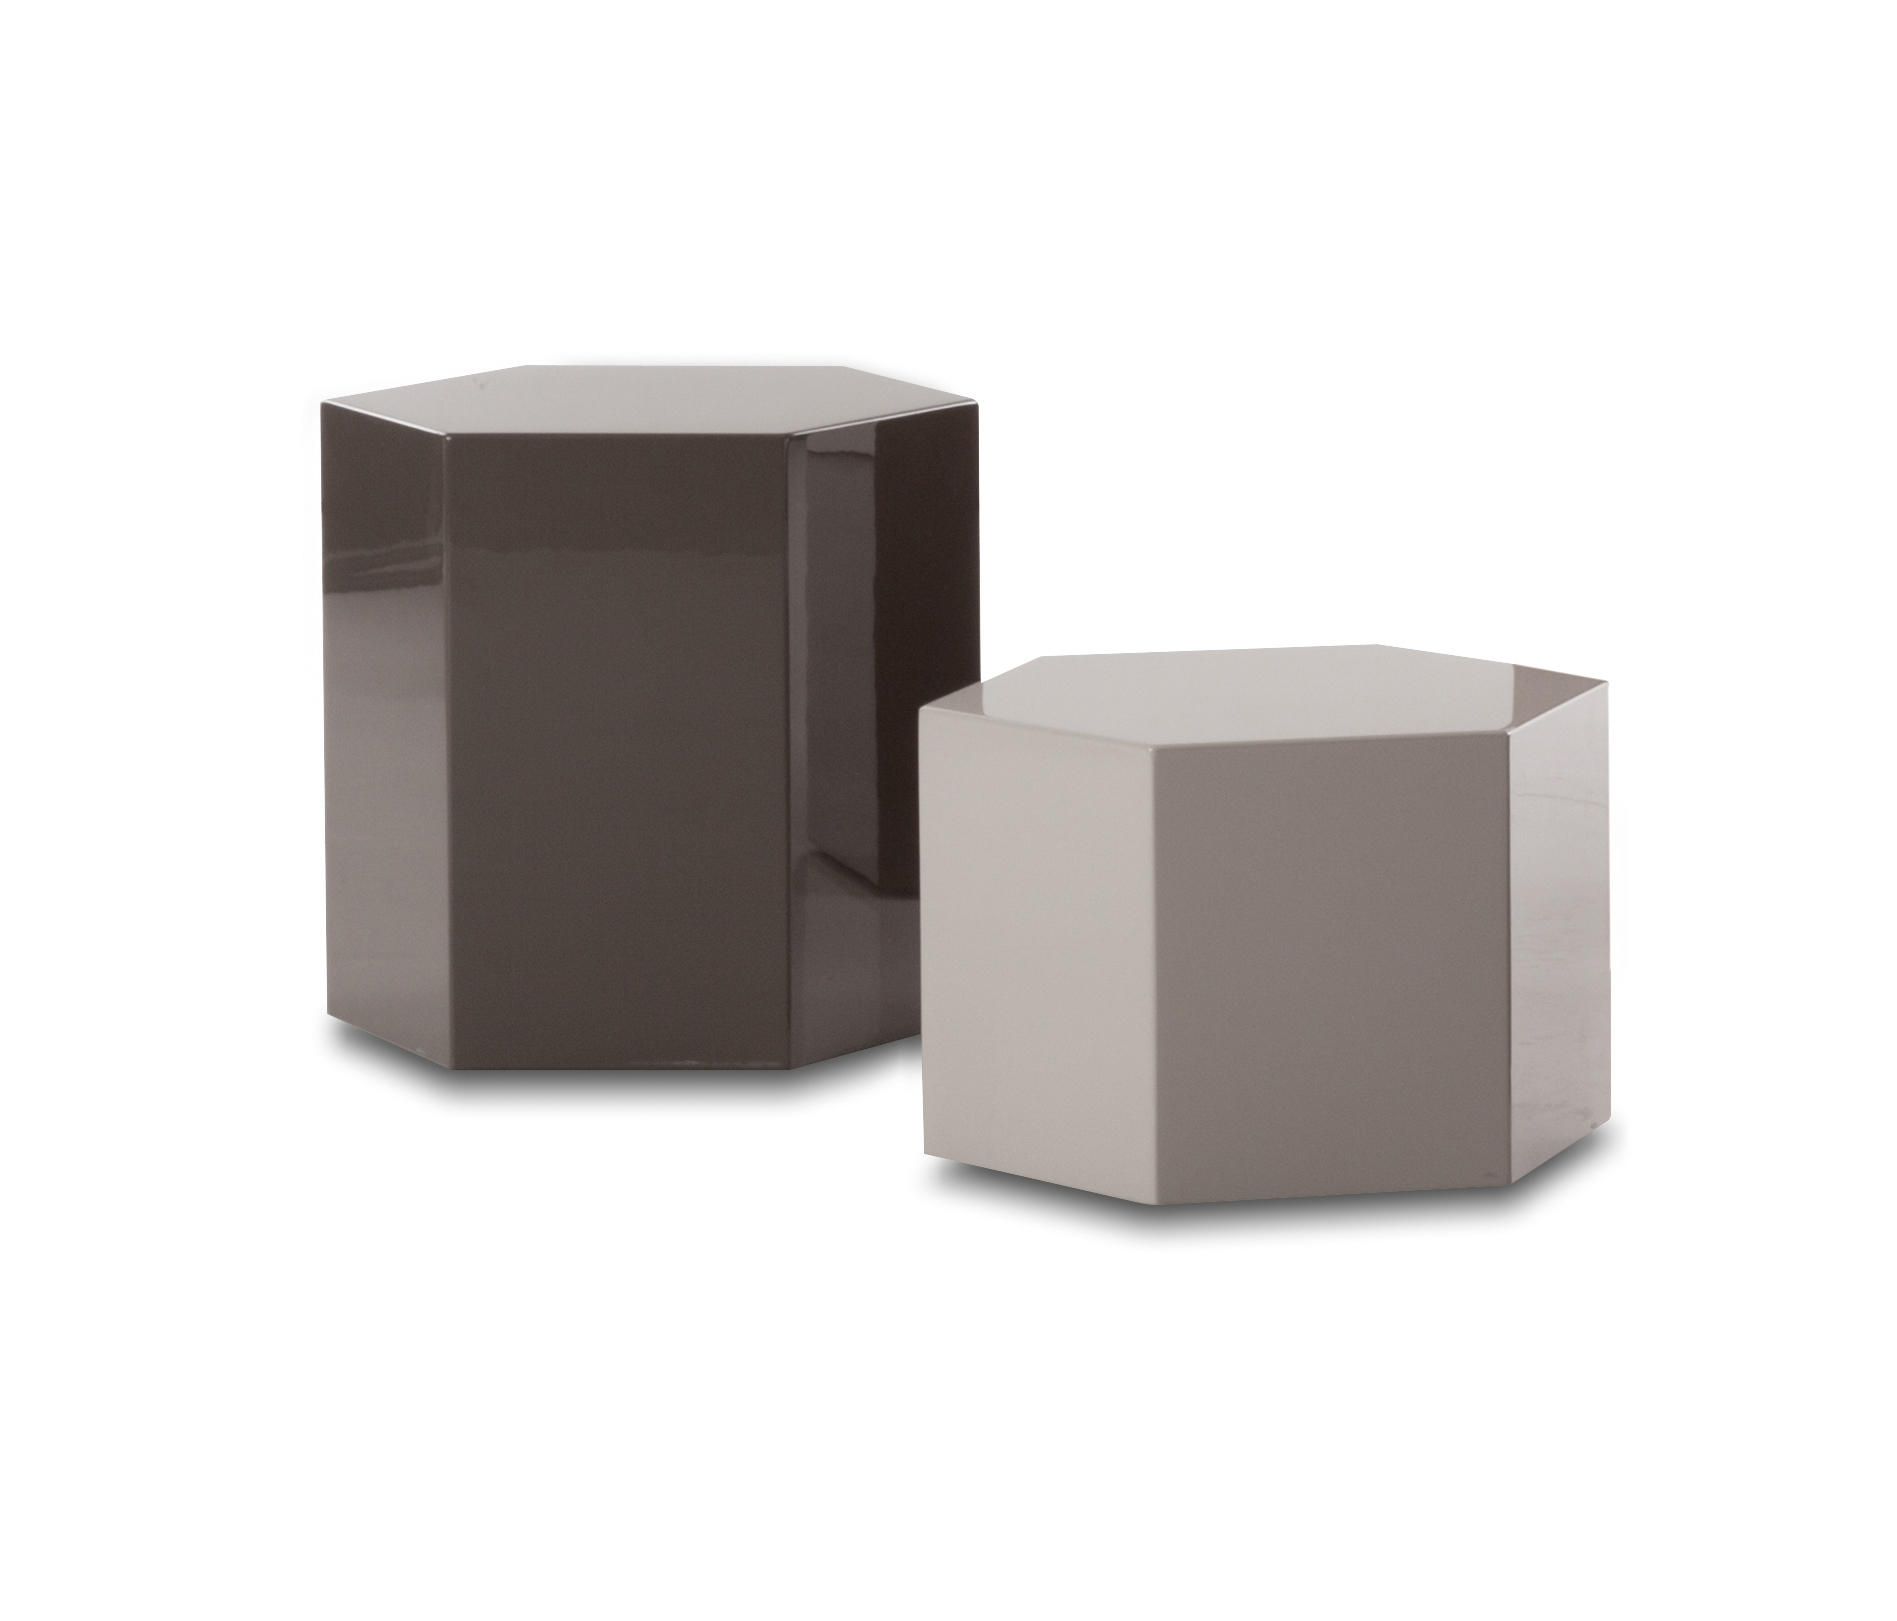 aeron outdoor accent tables side from minotti architonic table lighting seattle dark farmhouse marble brass coffee small battery powered lamps lucite nesting target matching and